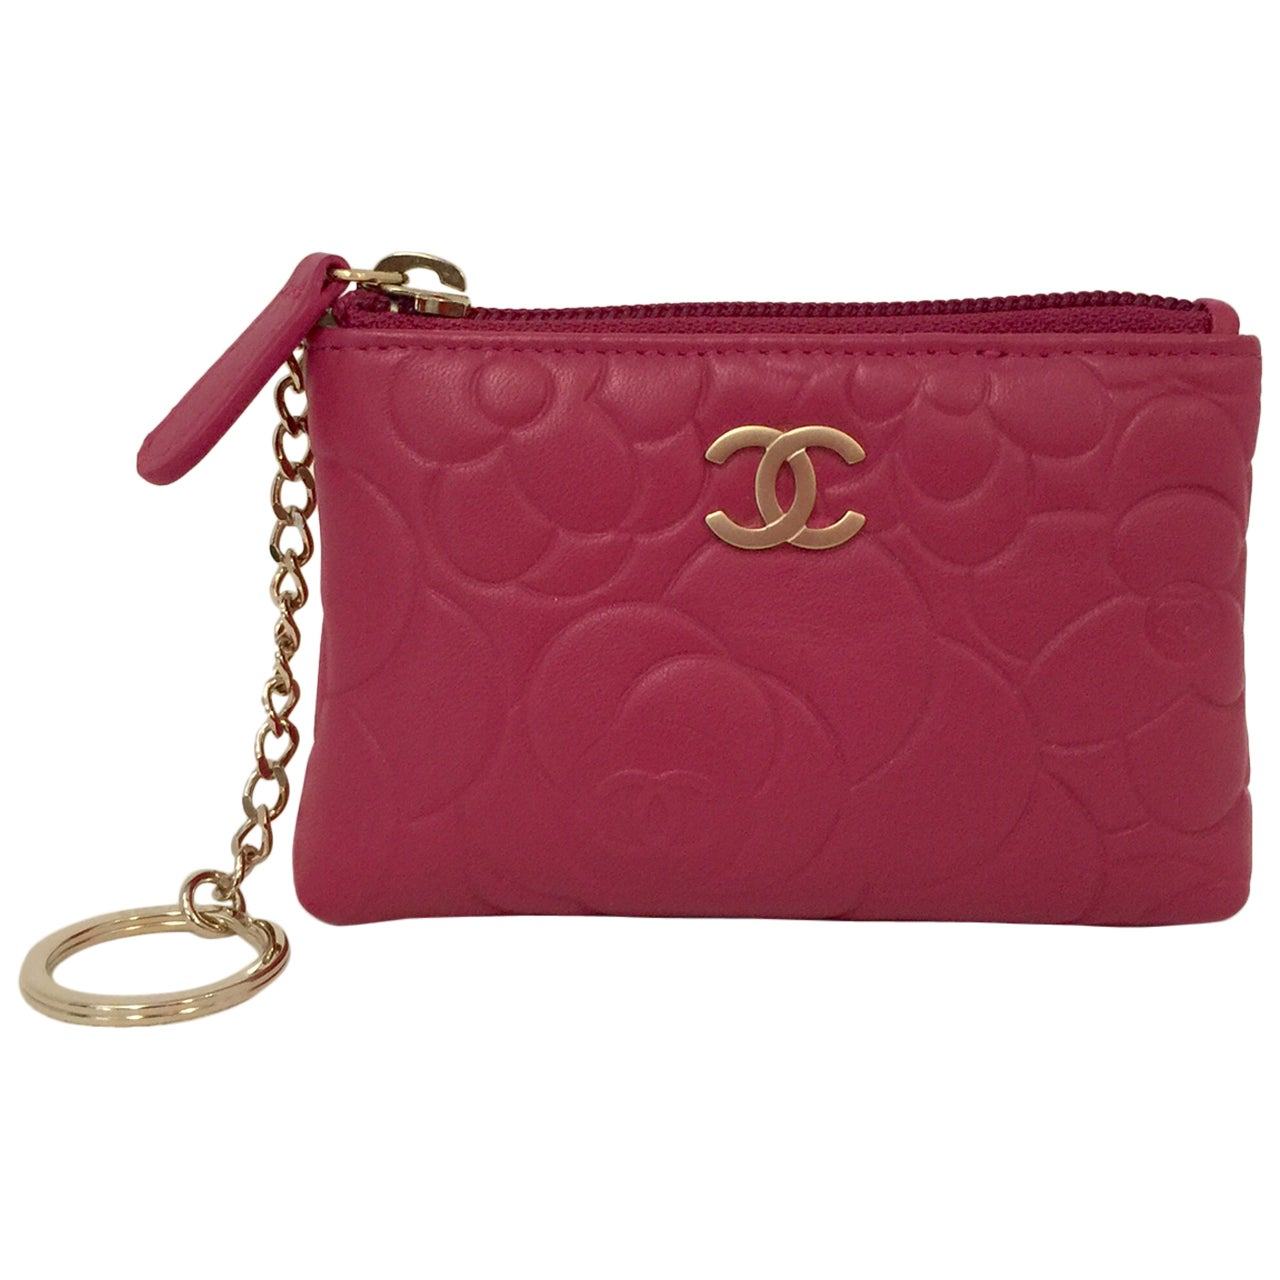 74d6e8f17773 Chanel Fuchsia Camellia Stamped Leather O-Key Holder With Box Serial No  16132442 at 1stdibs